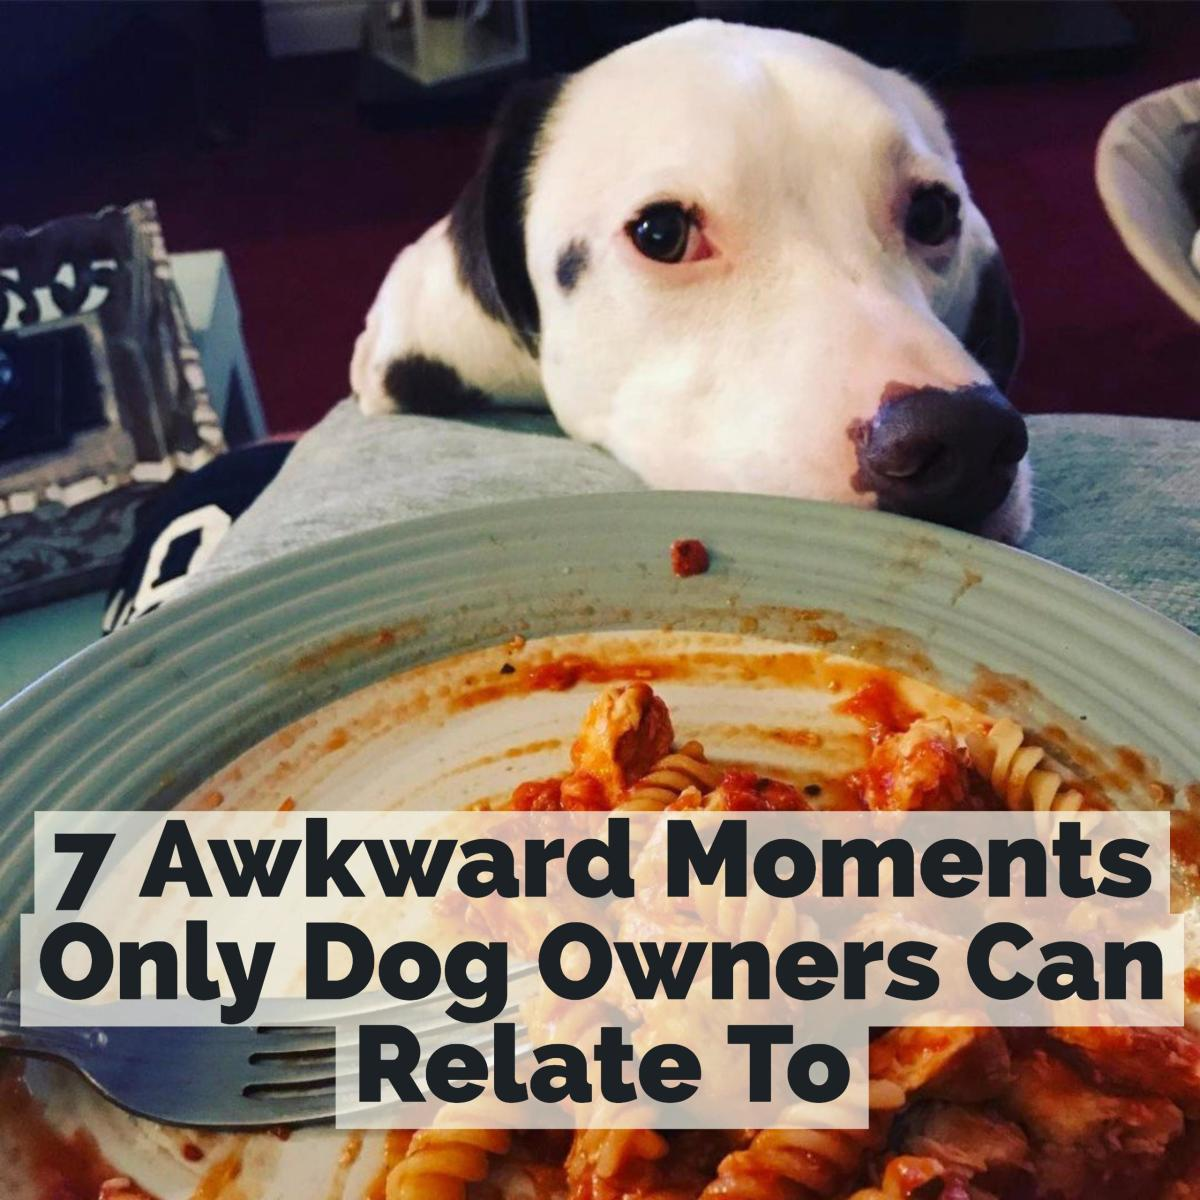 With a dog, every meal is a guilt trip.